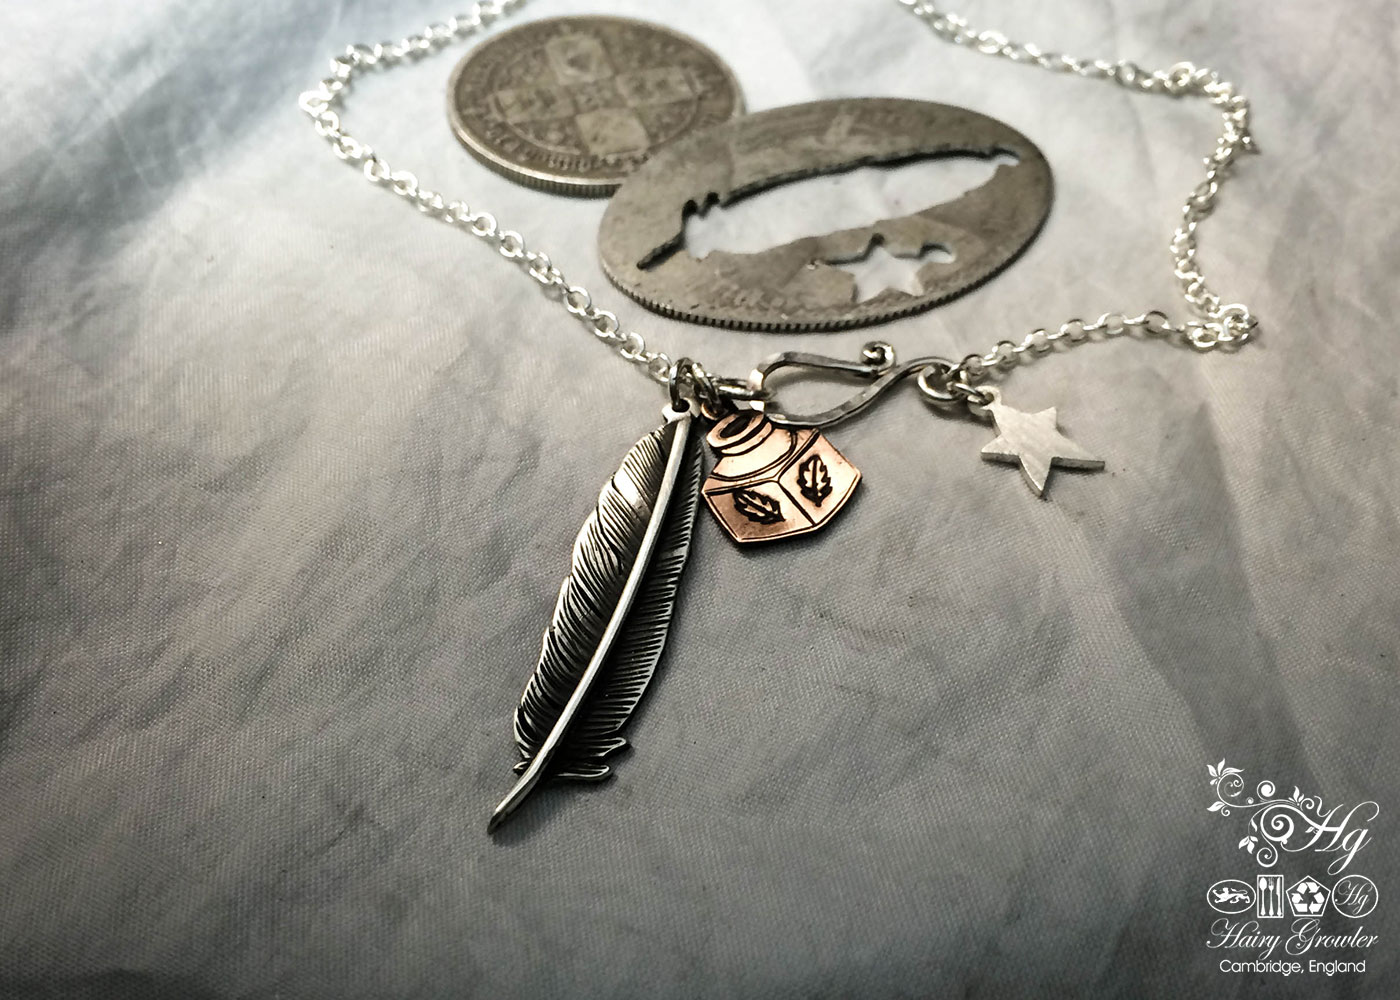 Inkwell and quill writers necklace - handmade and recycled using silver florin coins